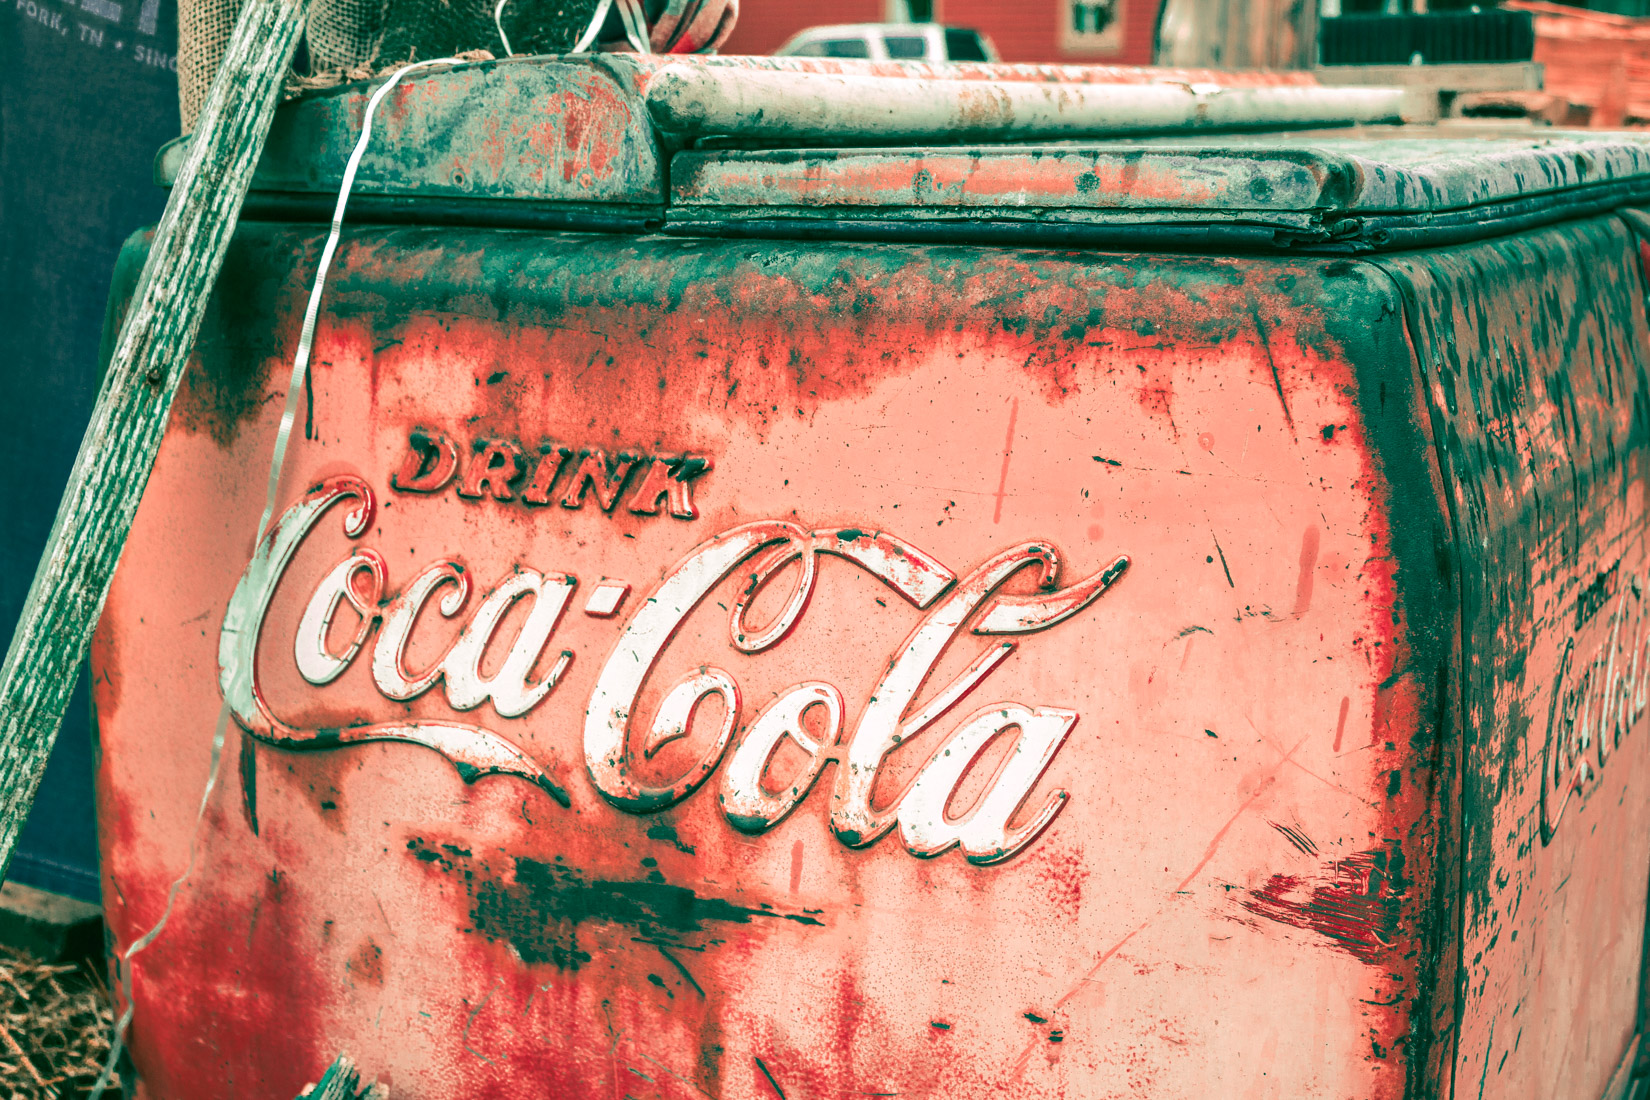 Rusty Coca-cola Cooler